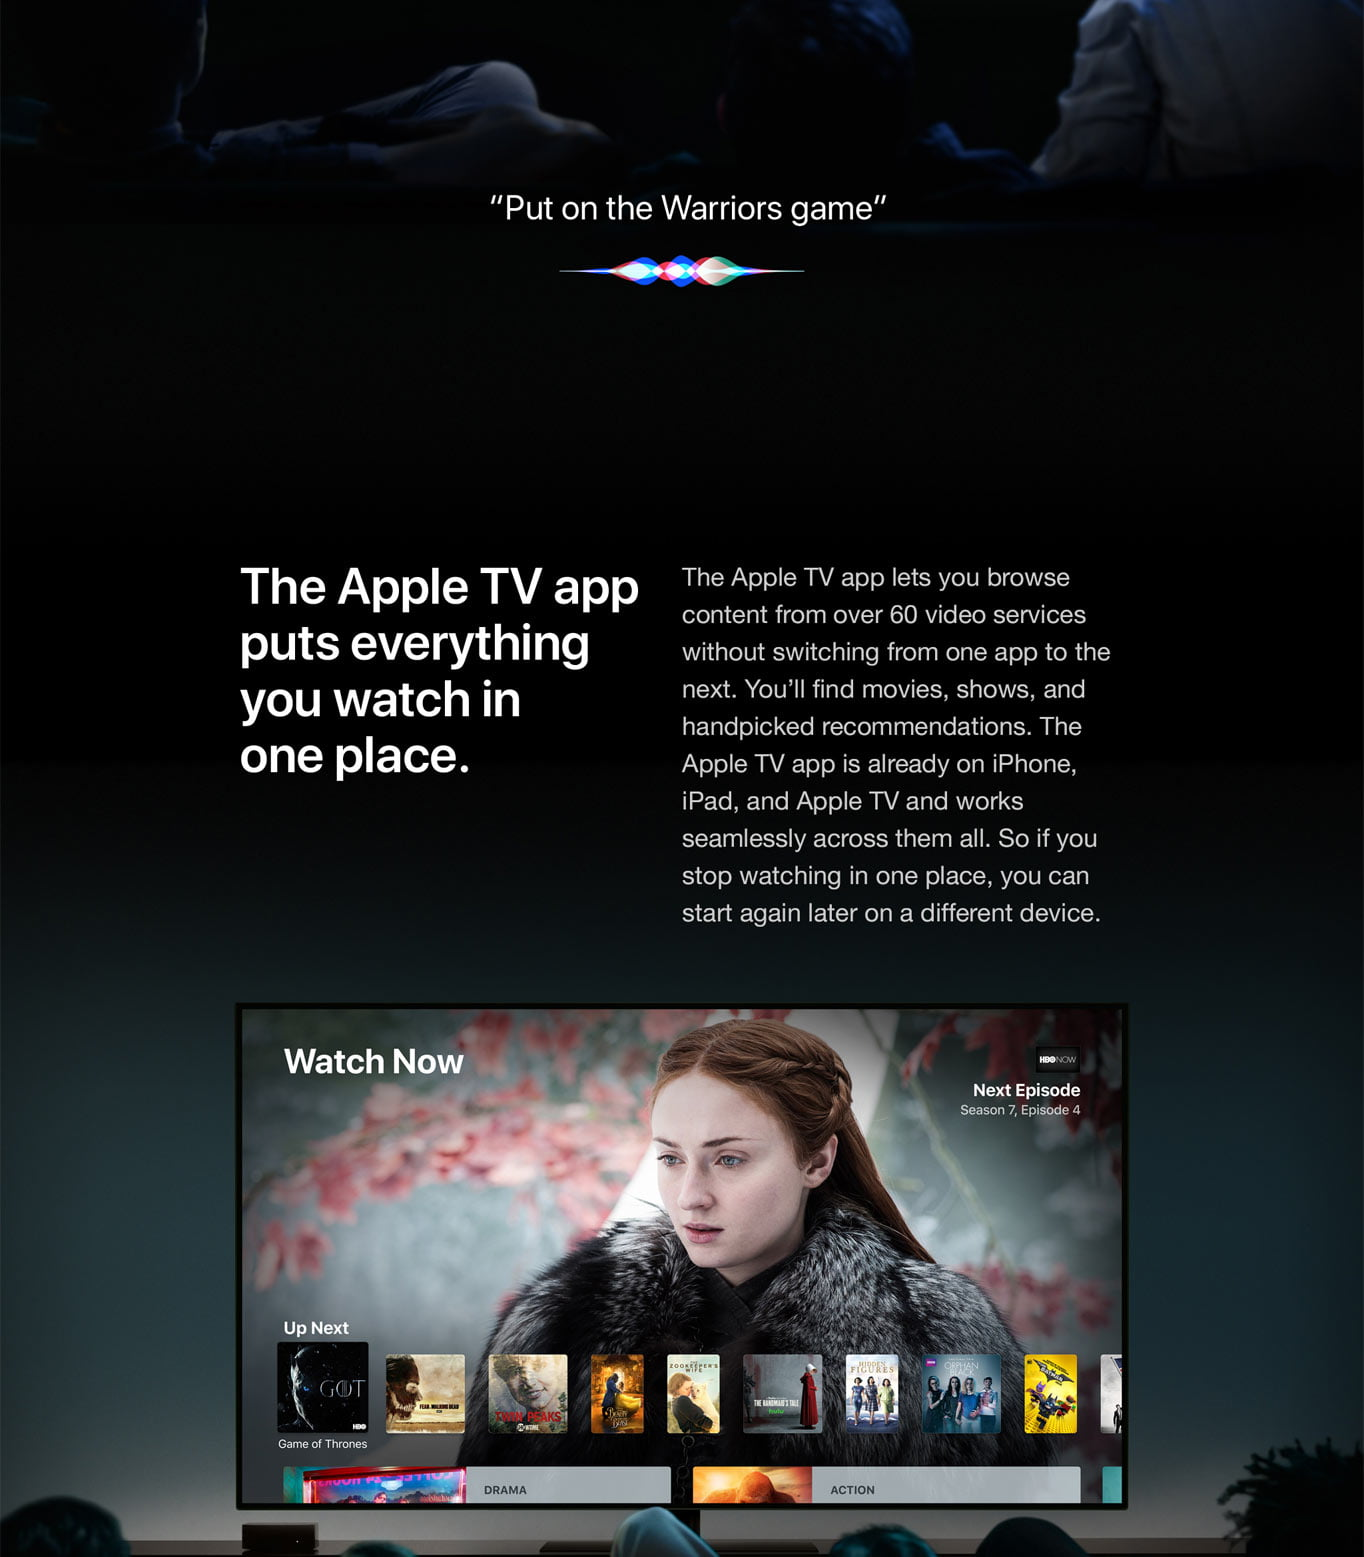 The Apple TV app puts everything you watch in one place